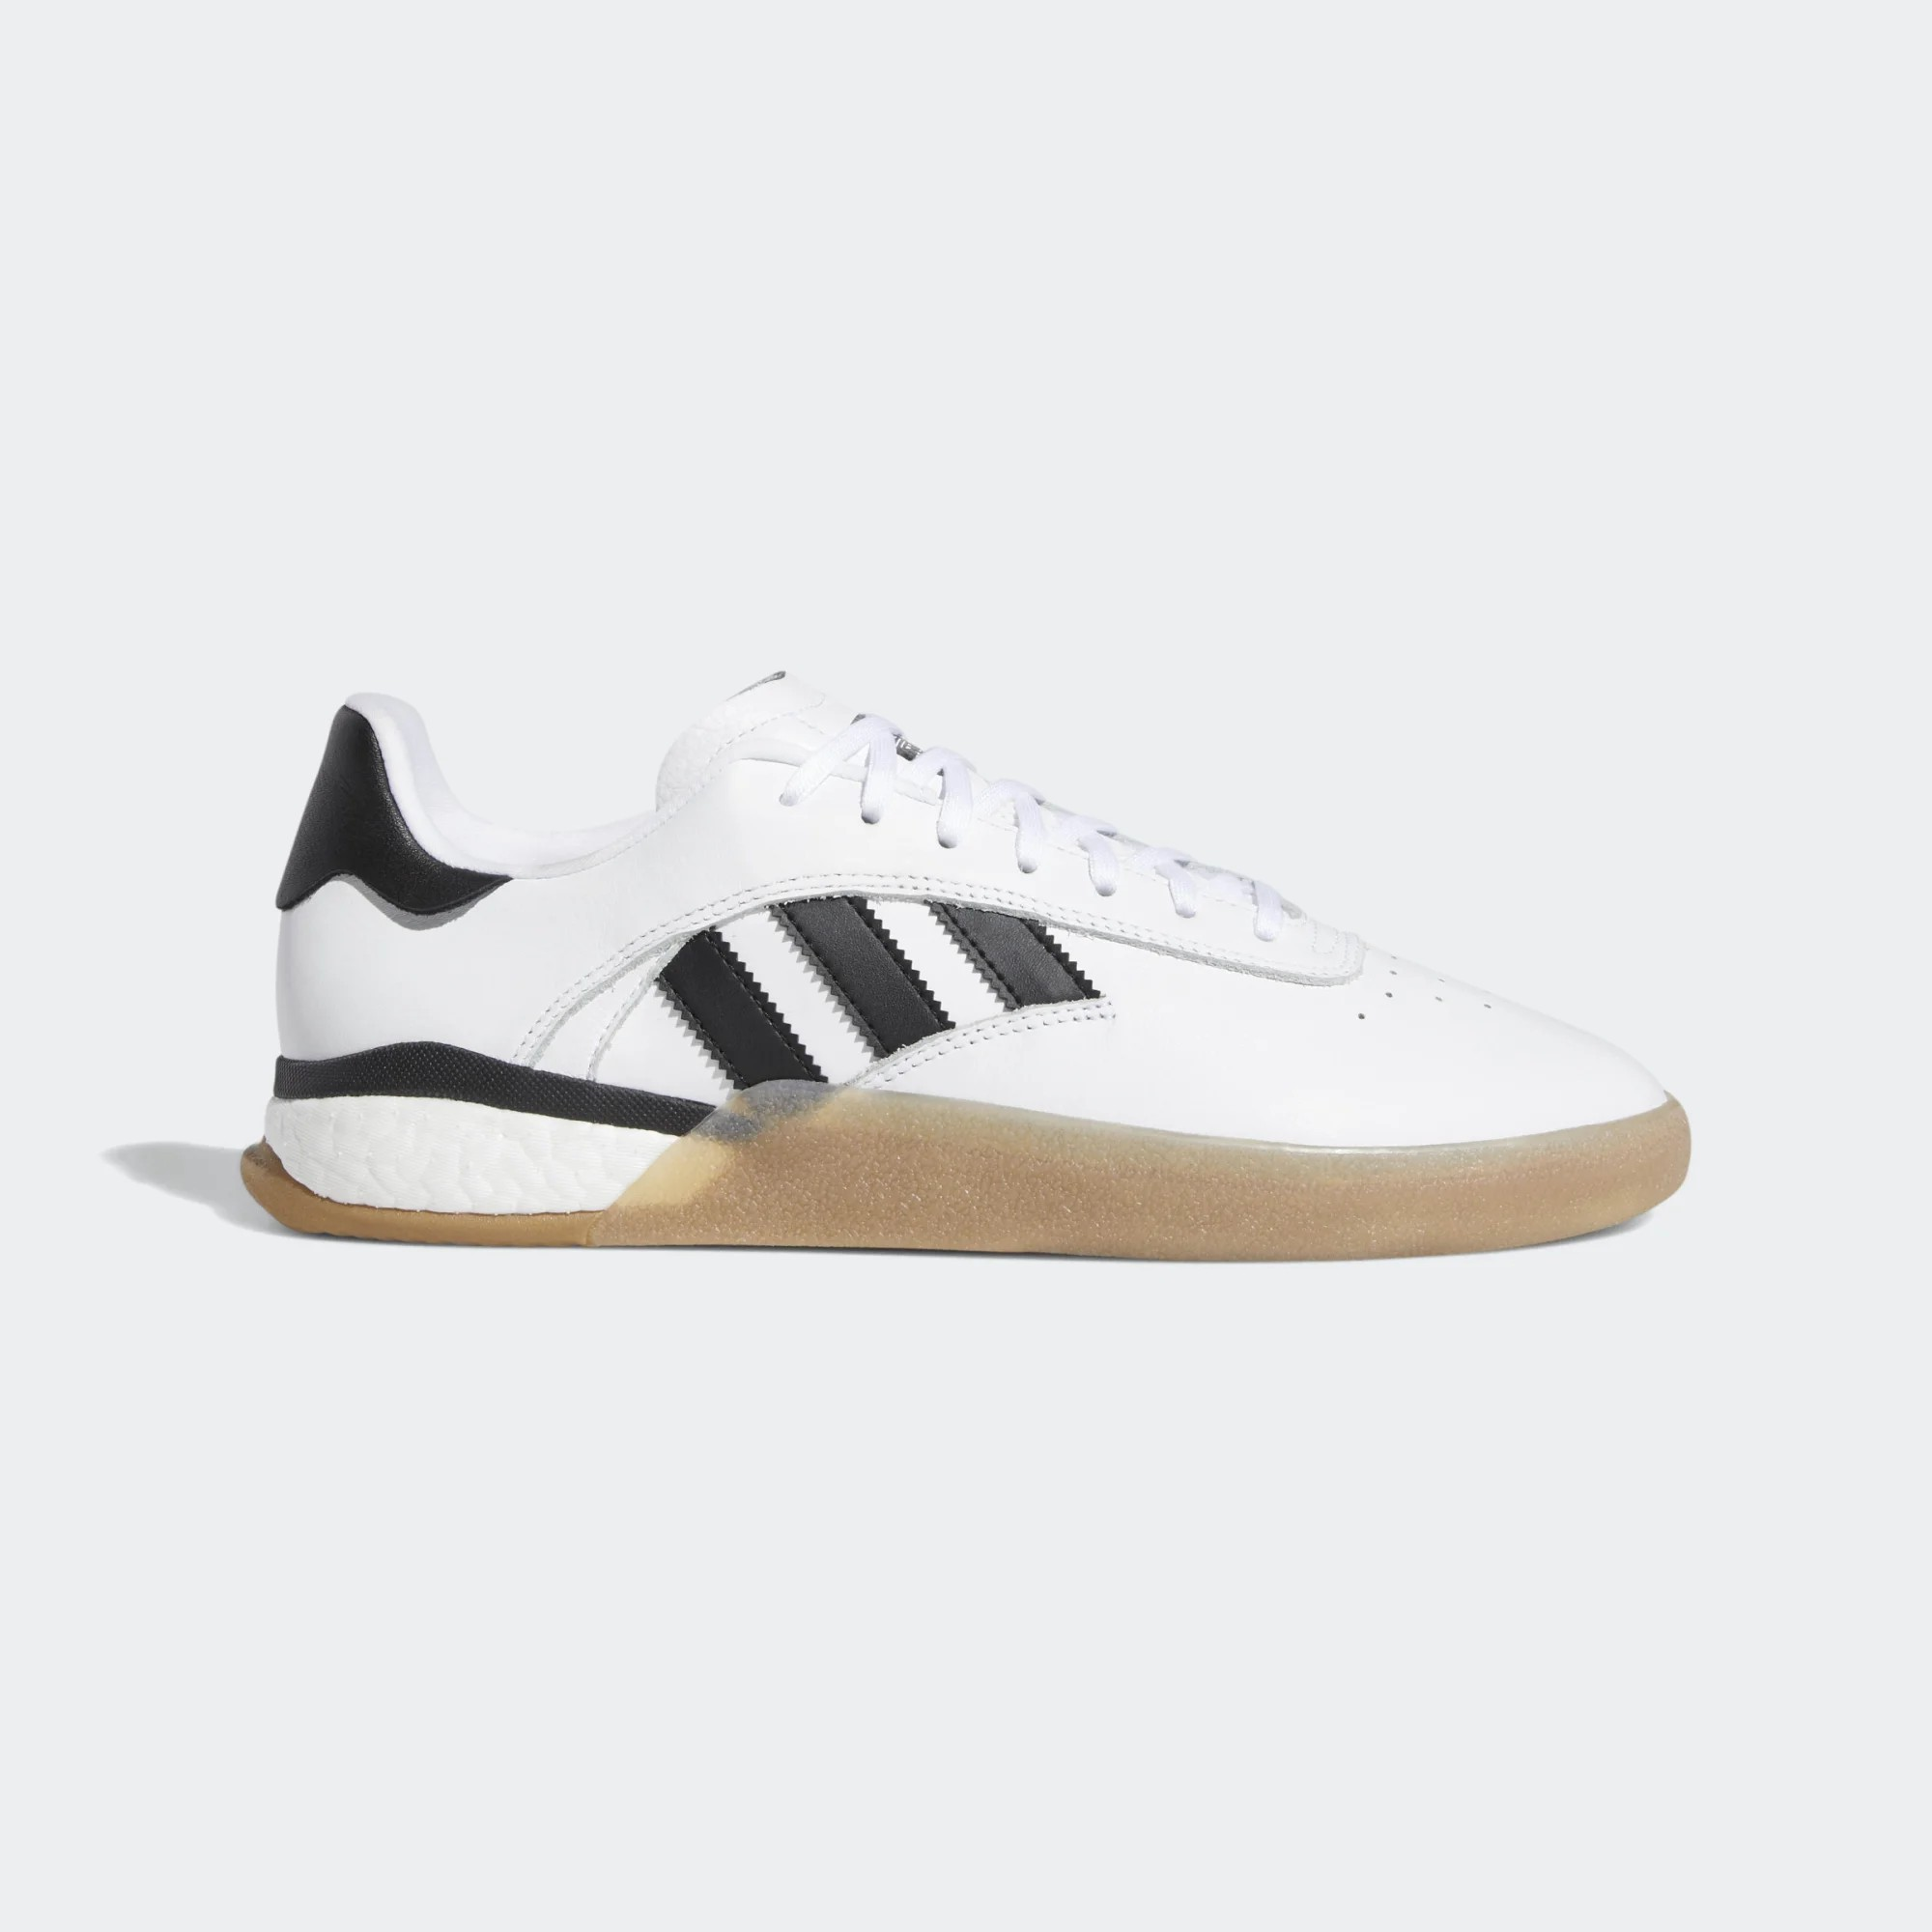 adidas Skateboarding 3ST.004 White Skate shoes DB3153